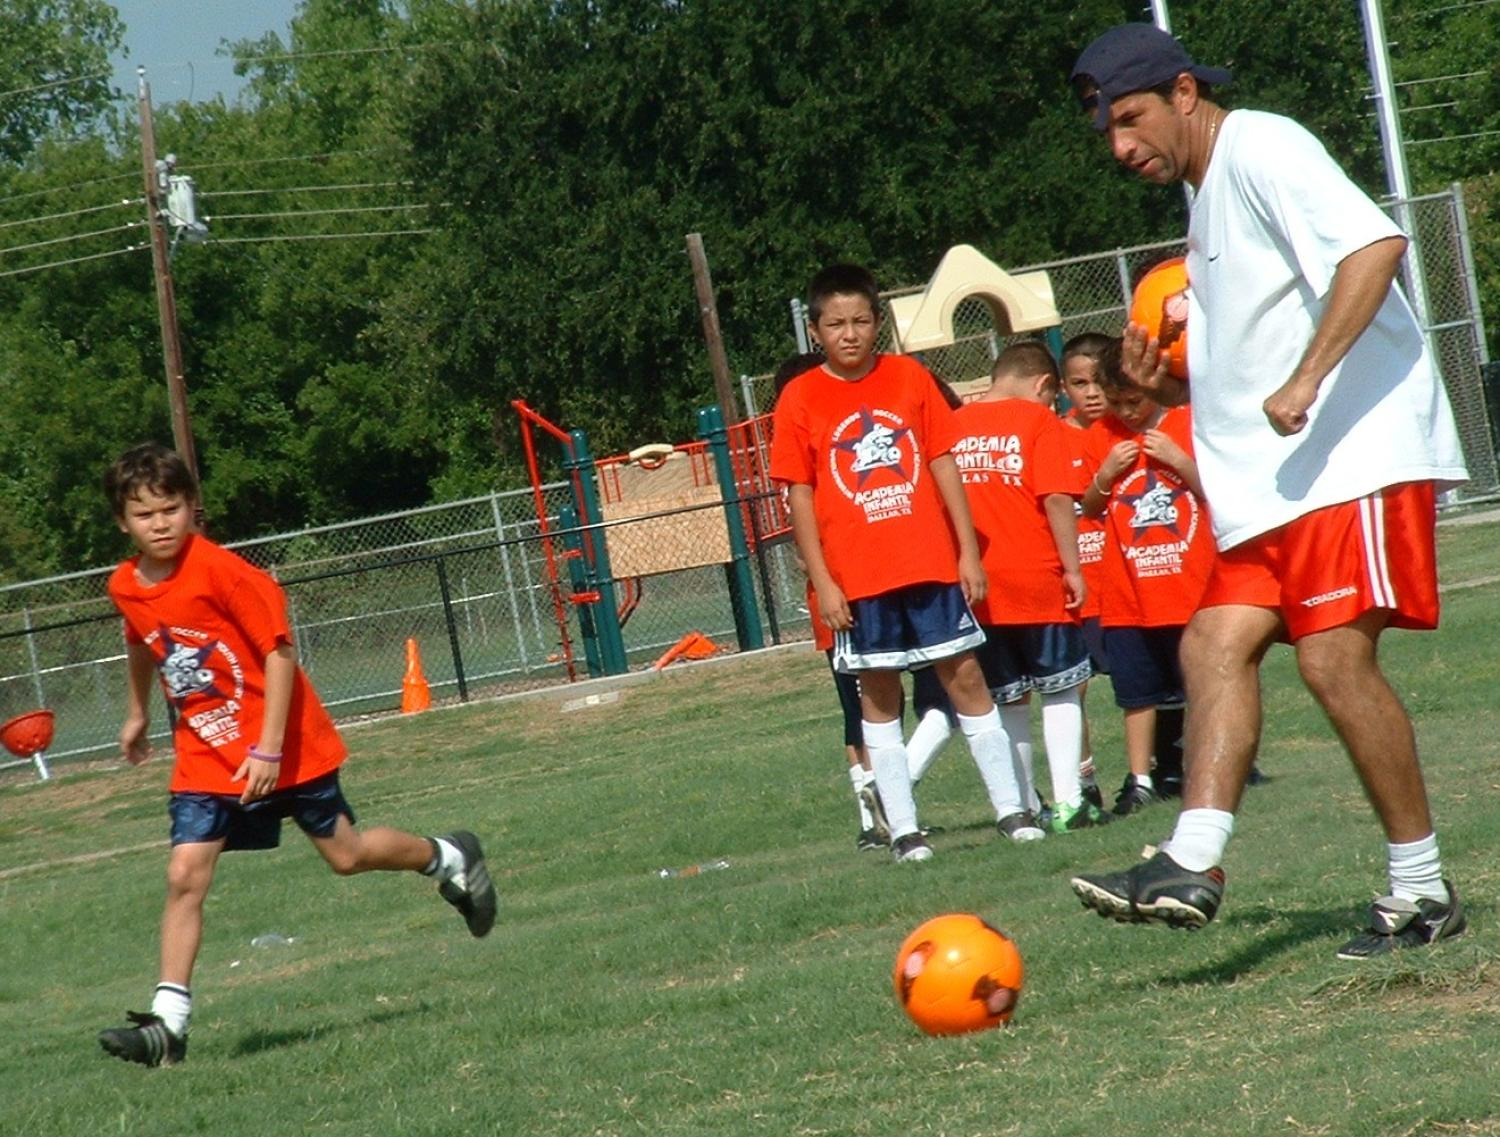 [Boys engage in soccer drills]                                                                                                      [Sequence #]: 1 of 1